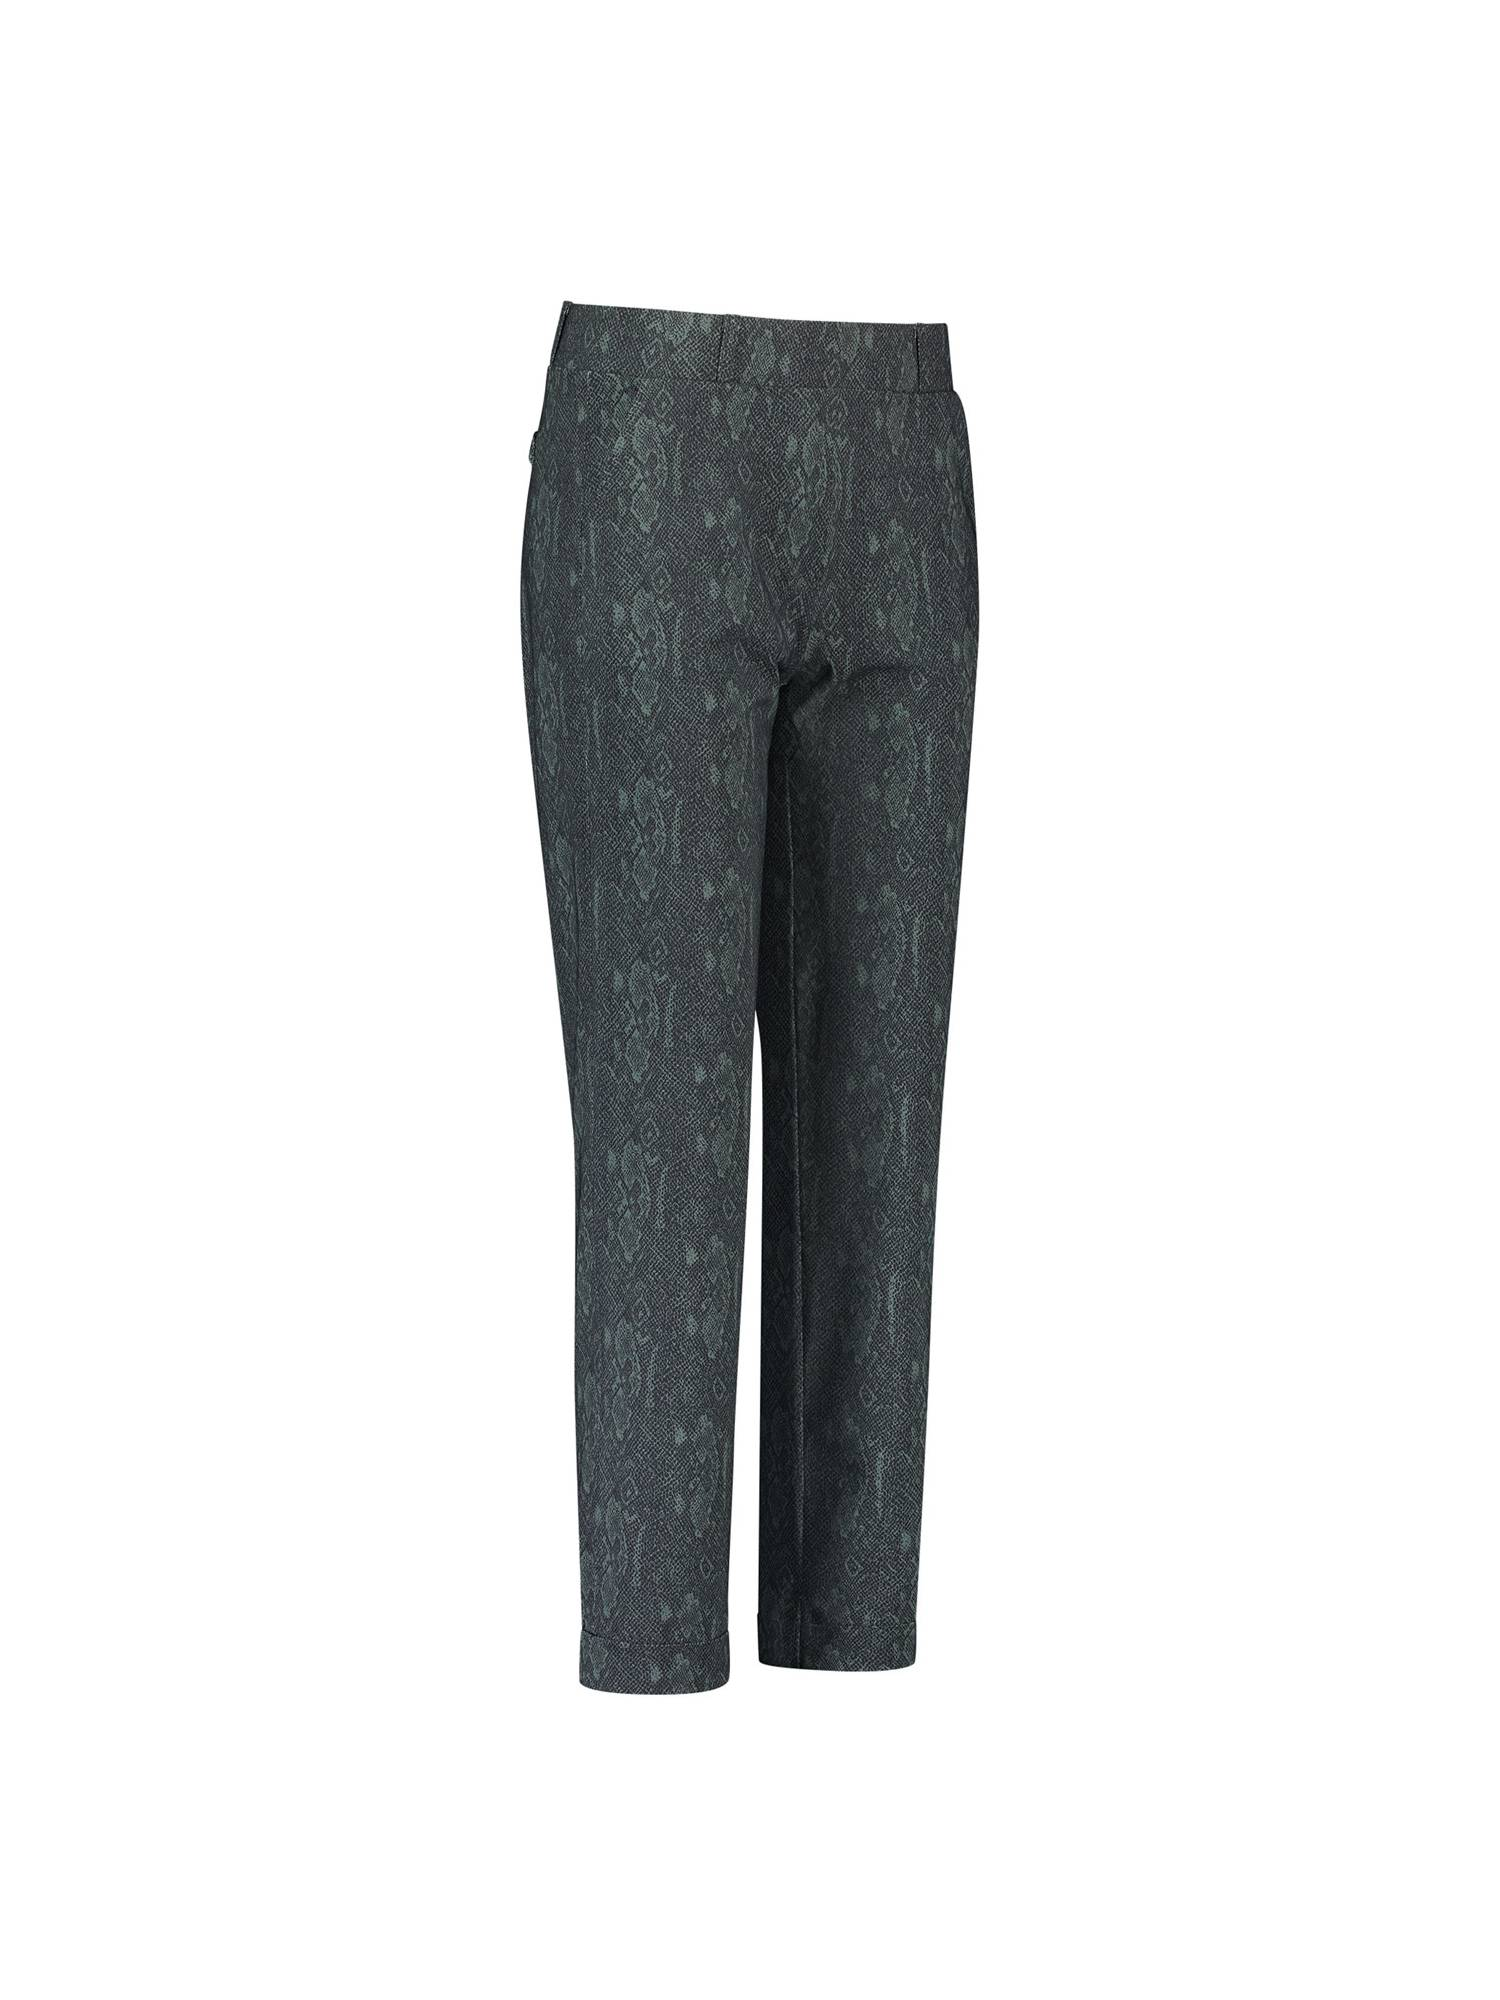 Studio Anneloes 05053 Anne snake trousers 9978 darkgrey/mossgreen | Pico Women Fashion & More